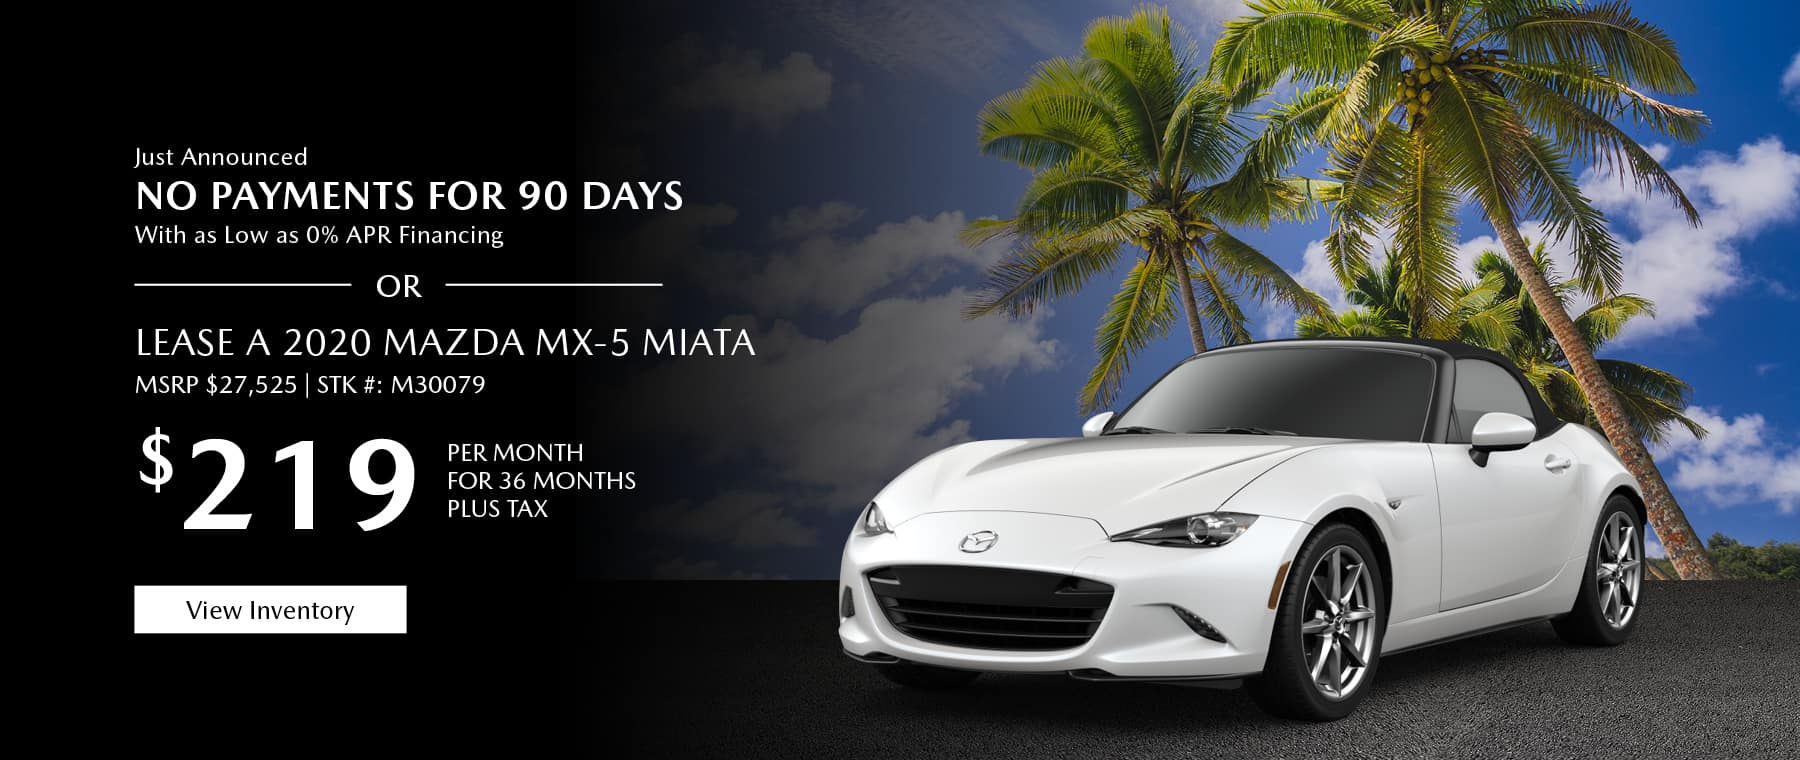 Just Announced, No payments for 90 days with as low as %0 APR financing, or lease the 2020 Mazda MX-5 Miata for $219 per month, plus tax. View inventory.